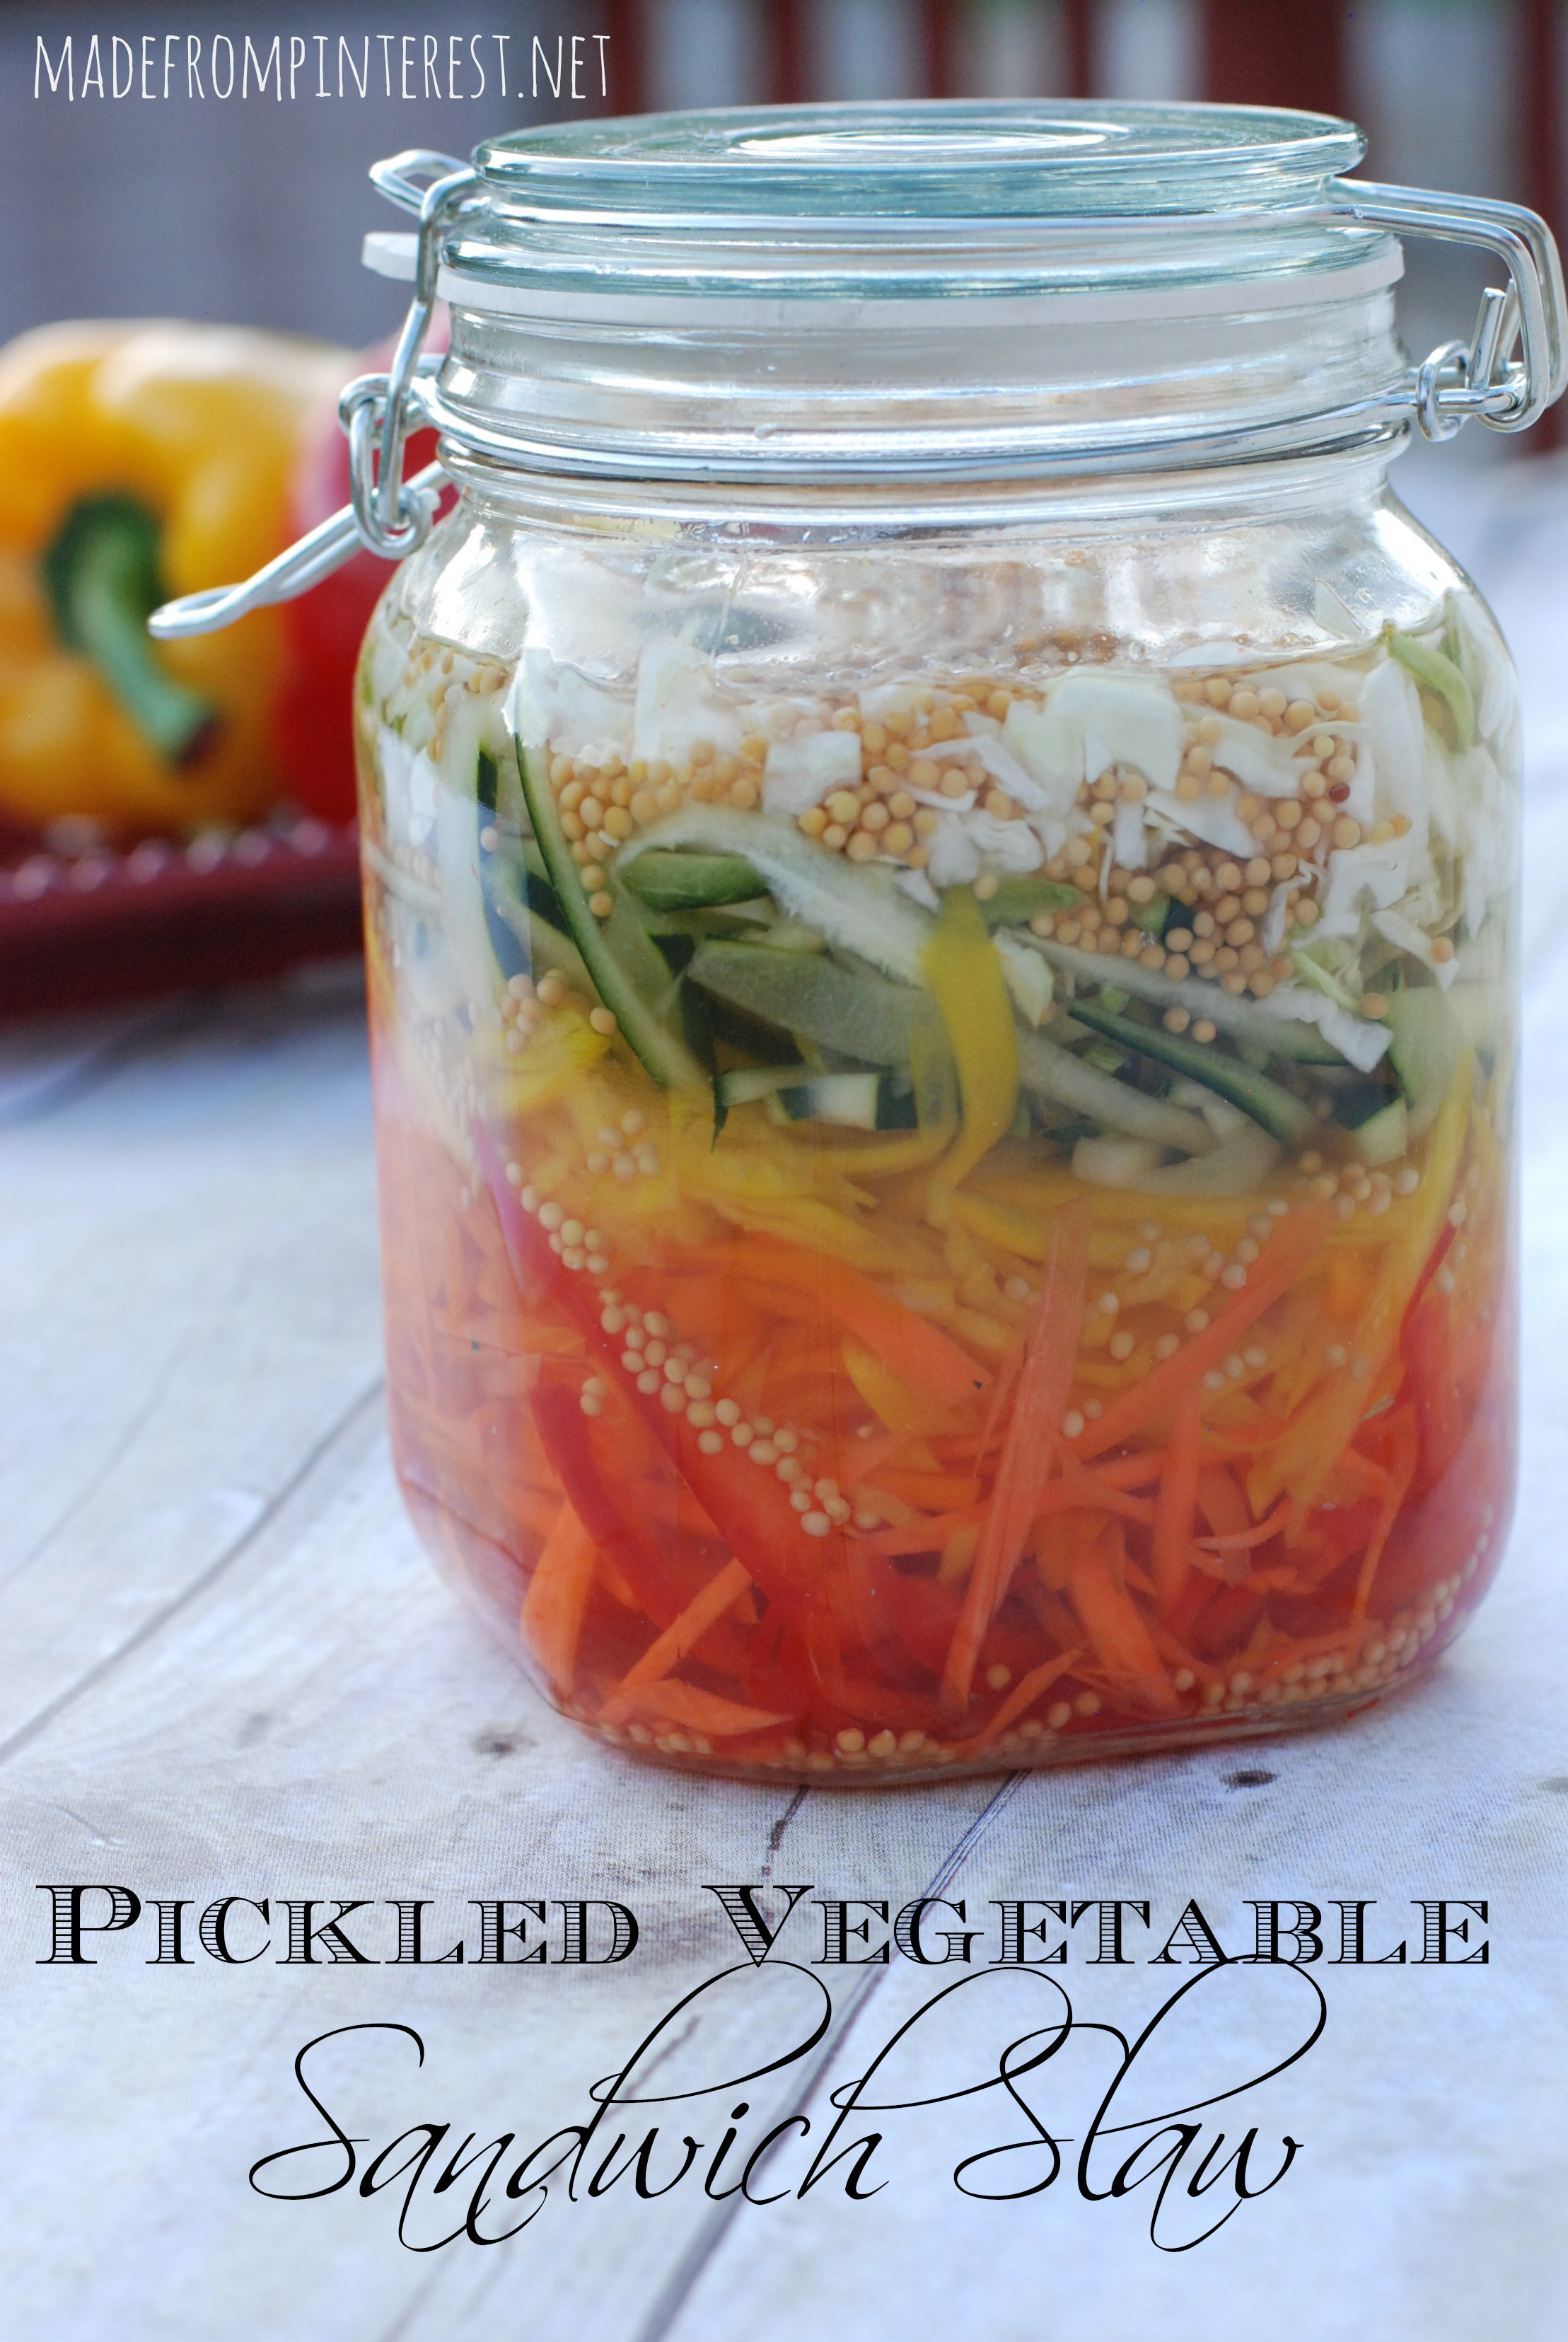 Make a killer sandwich with this Pickled Vegetable Sandwich Slaw. Outstanding! madefrompinterest.net